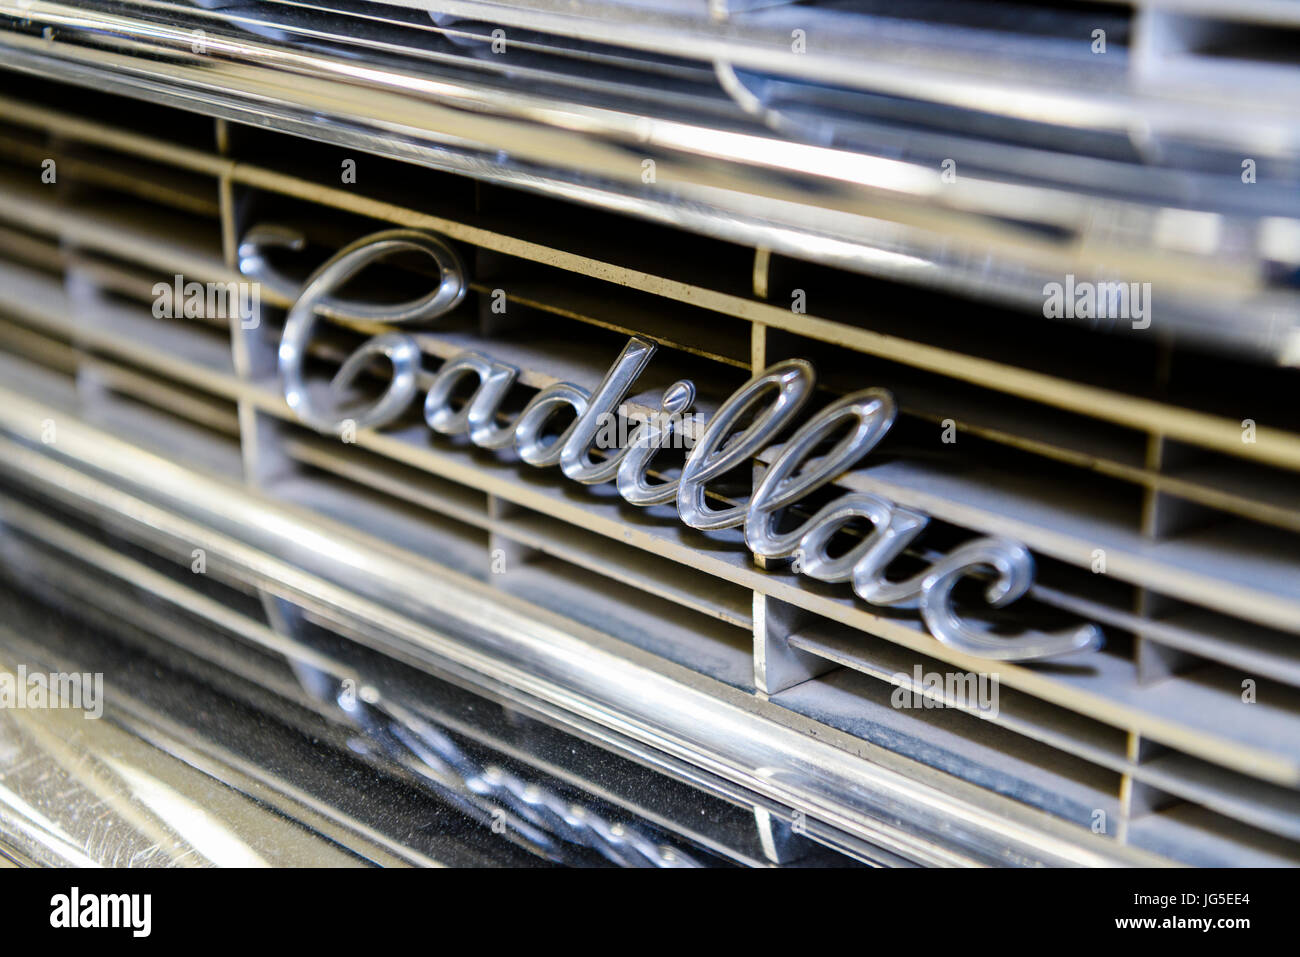 Cadillac Logo On The Chrome Front Radiator Grille Of A 1963 Coupe De Ville